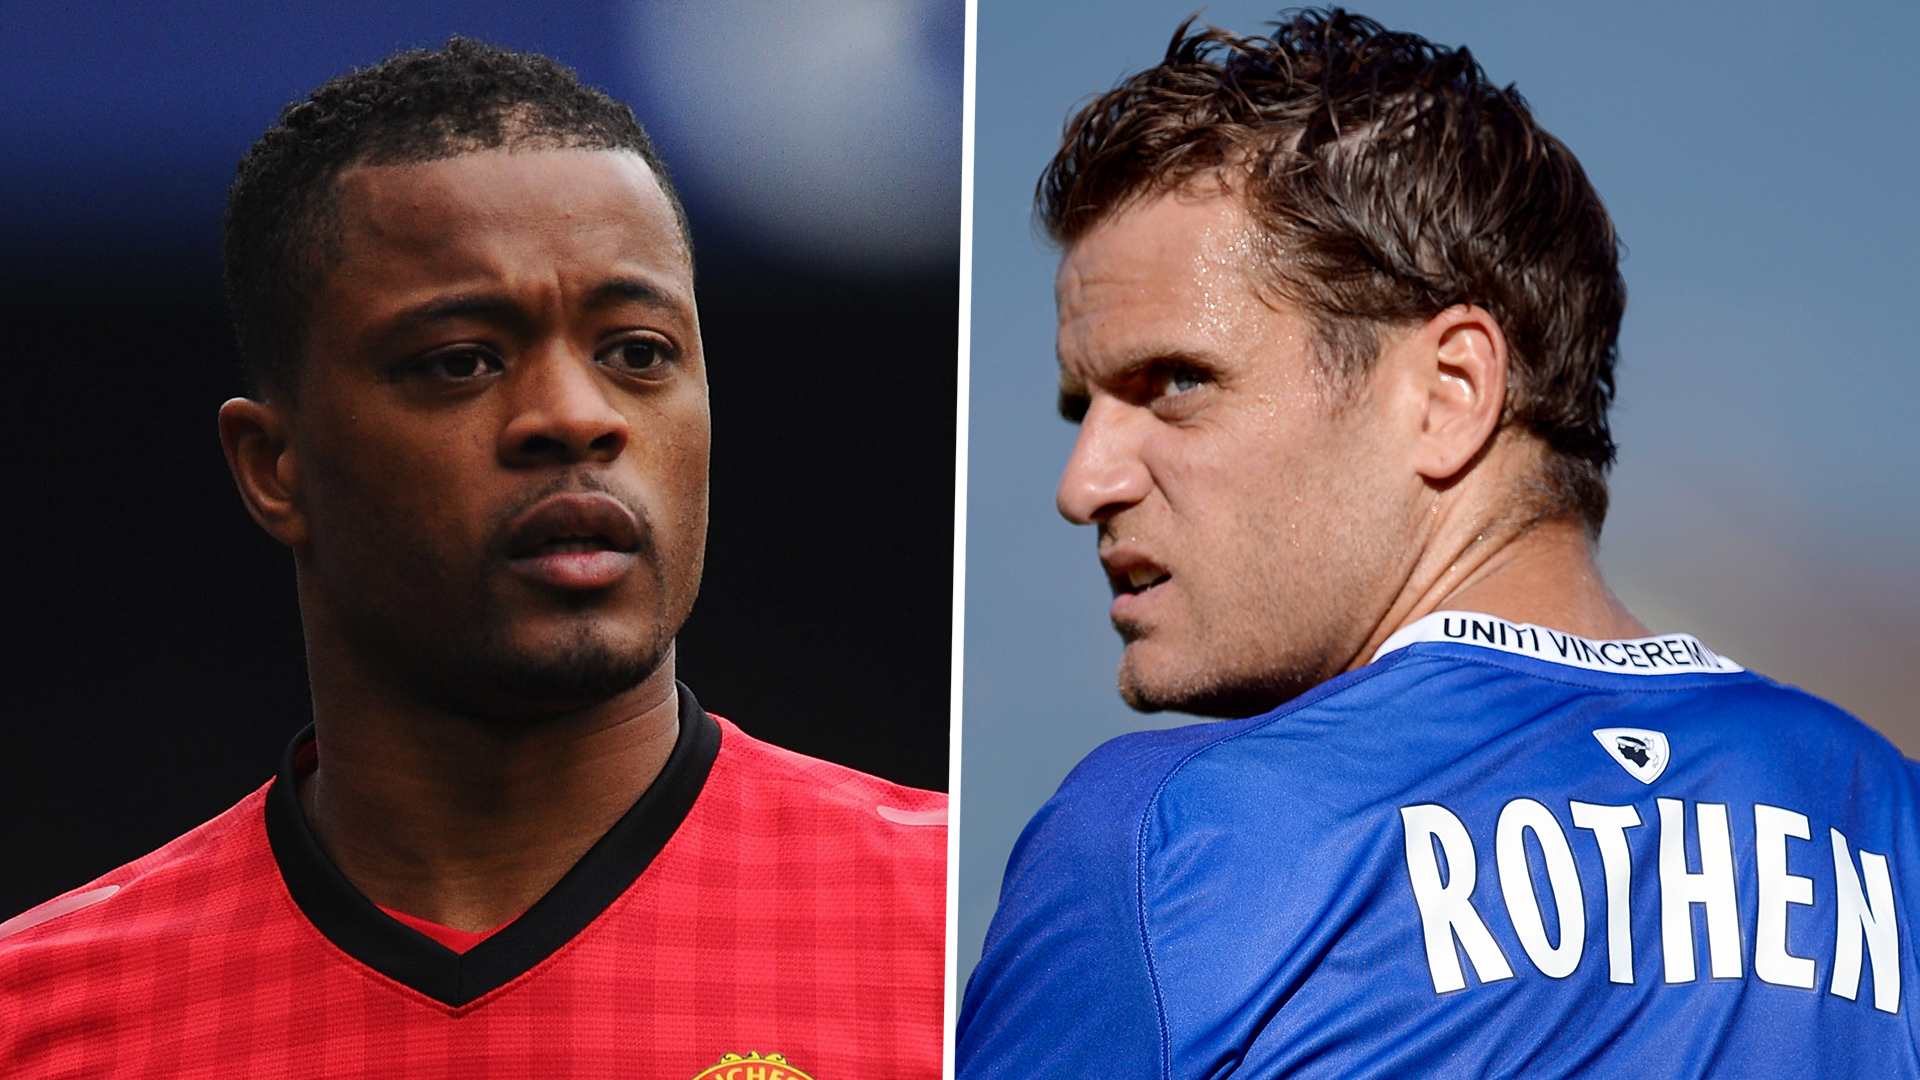 Evra Offers Out Former Teammate After He Criticised His Celebration